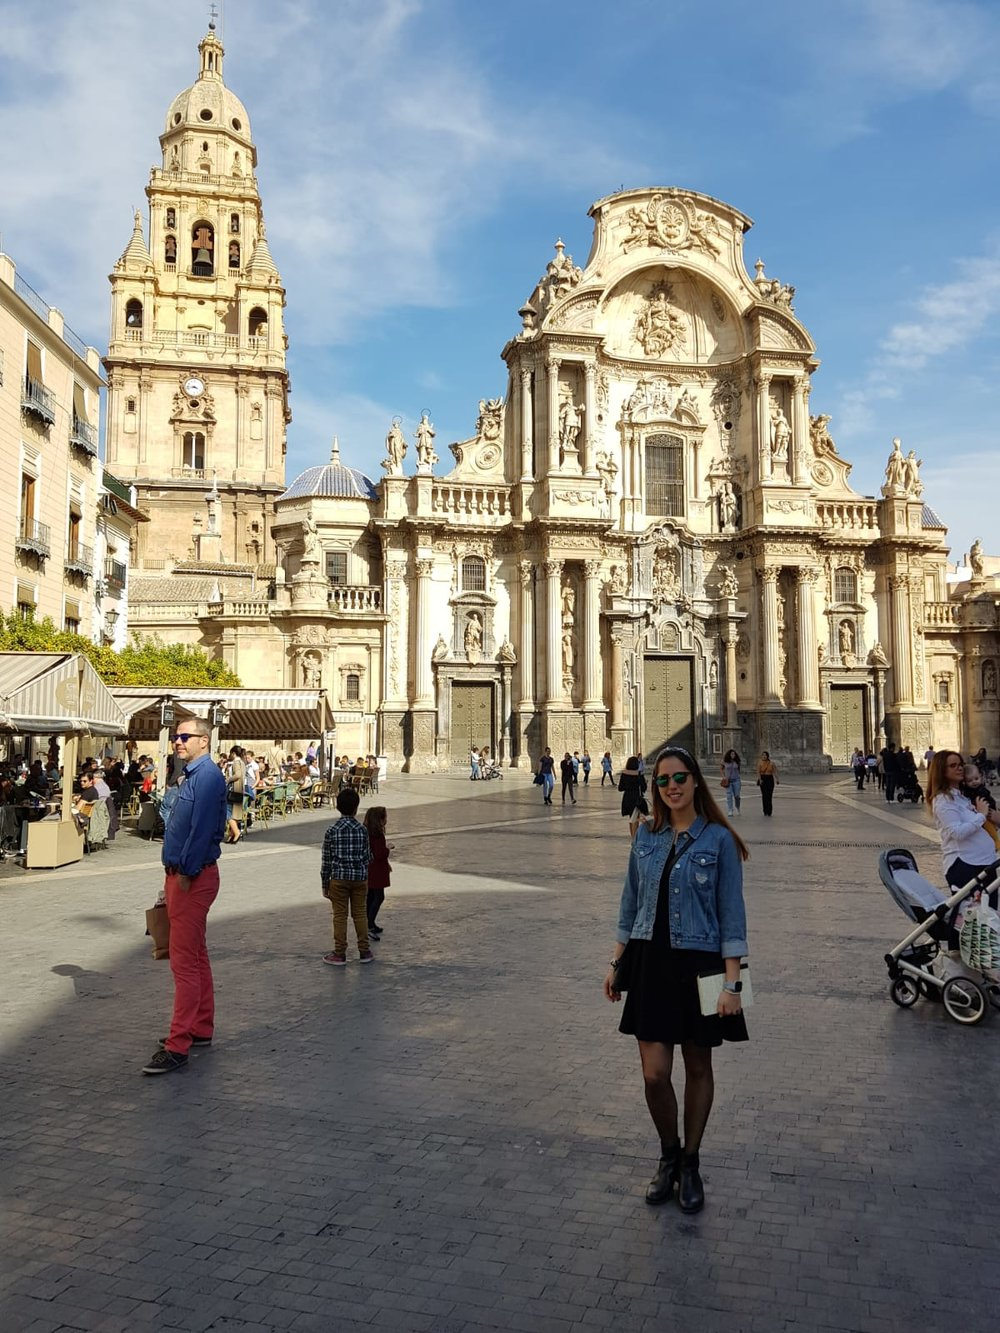 Murcia's cathedral is something truly unique.